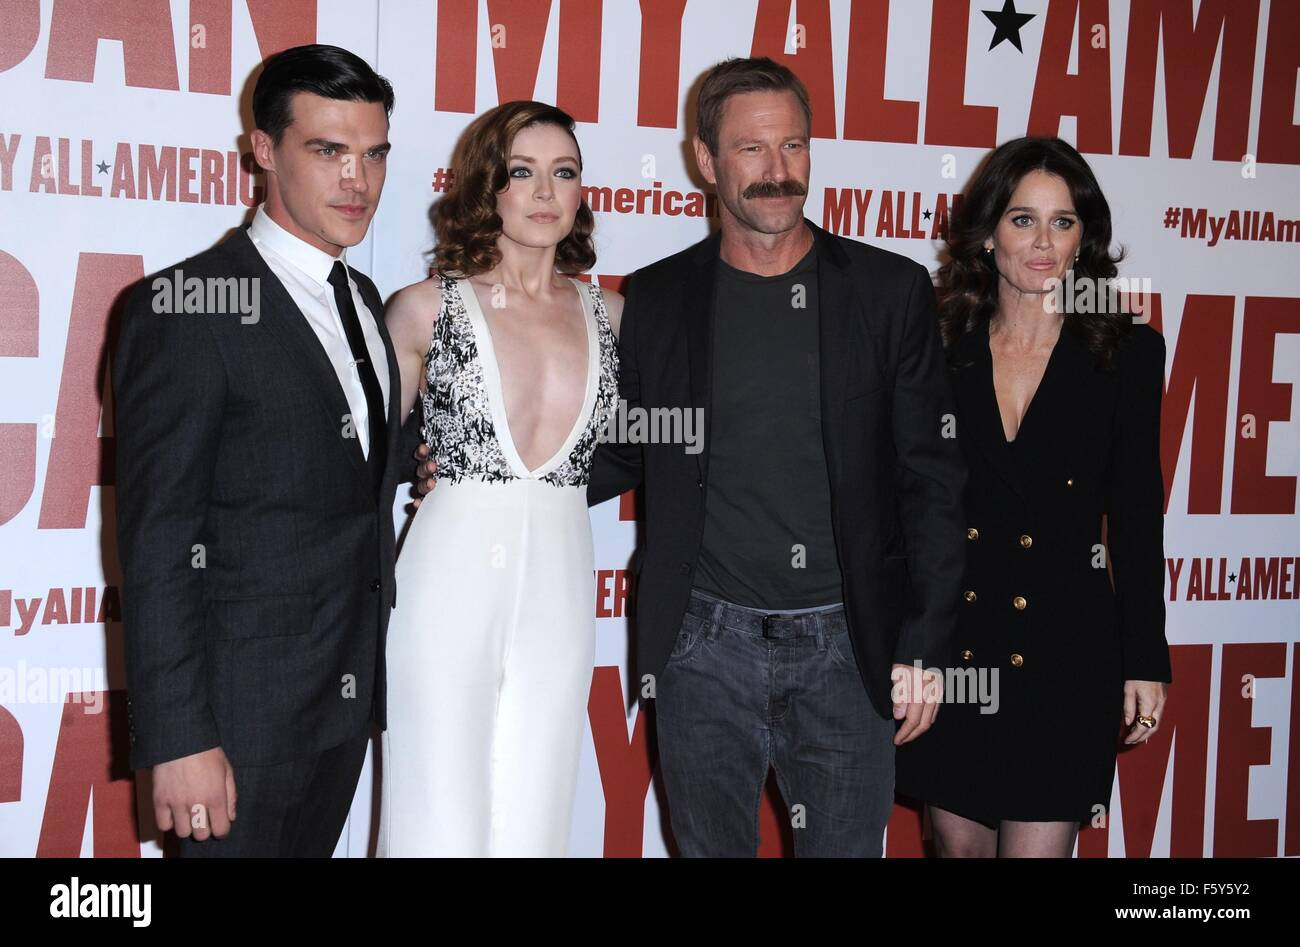 Finn Wittrock Sarah Bolger Aaron Eckhart Robin Tunney At Arrivals For MY ALL AMERICAN Premiere The Grove Los Angeles CA November 9 2015